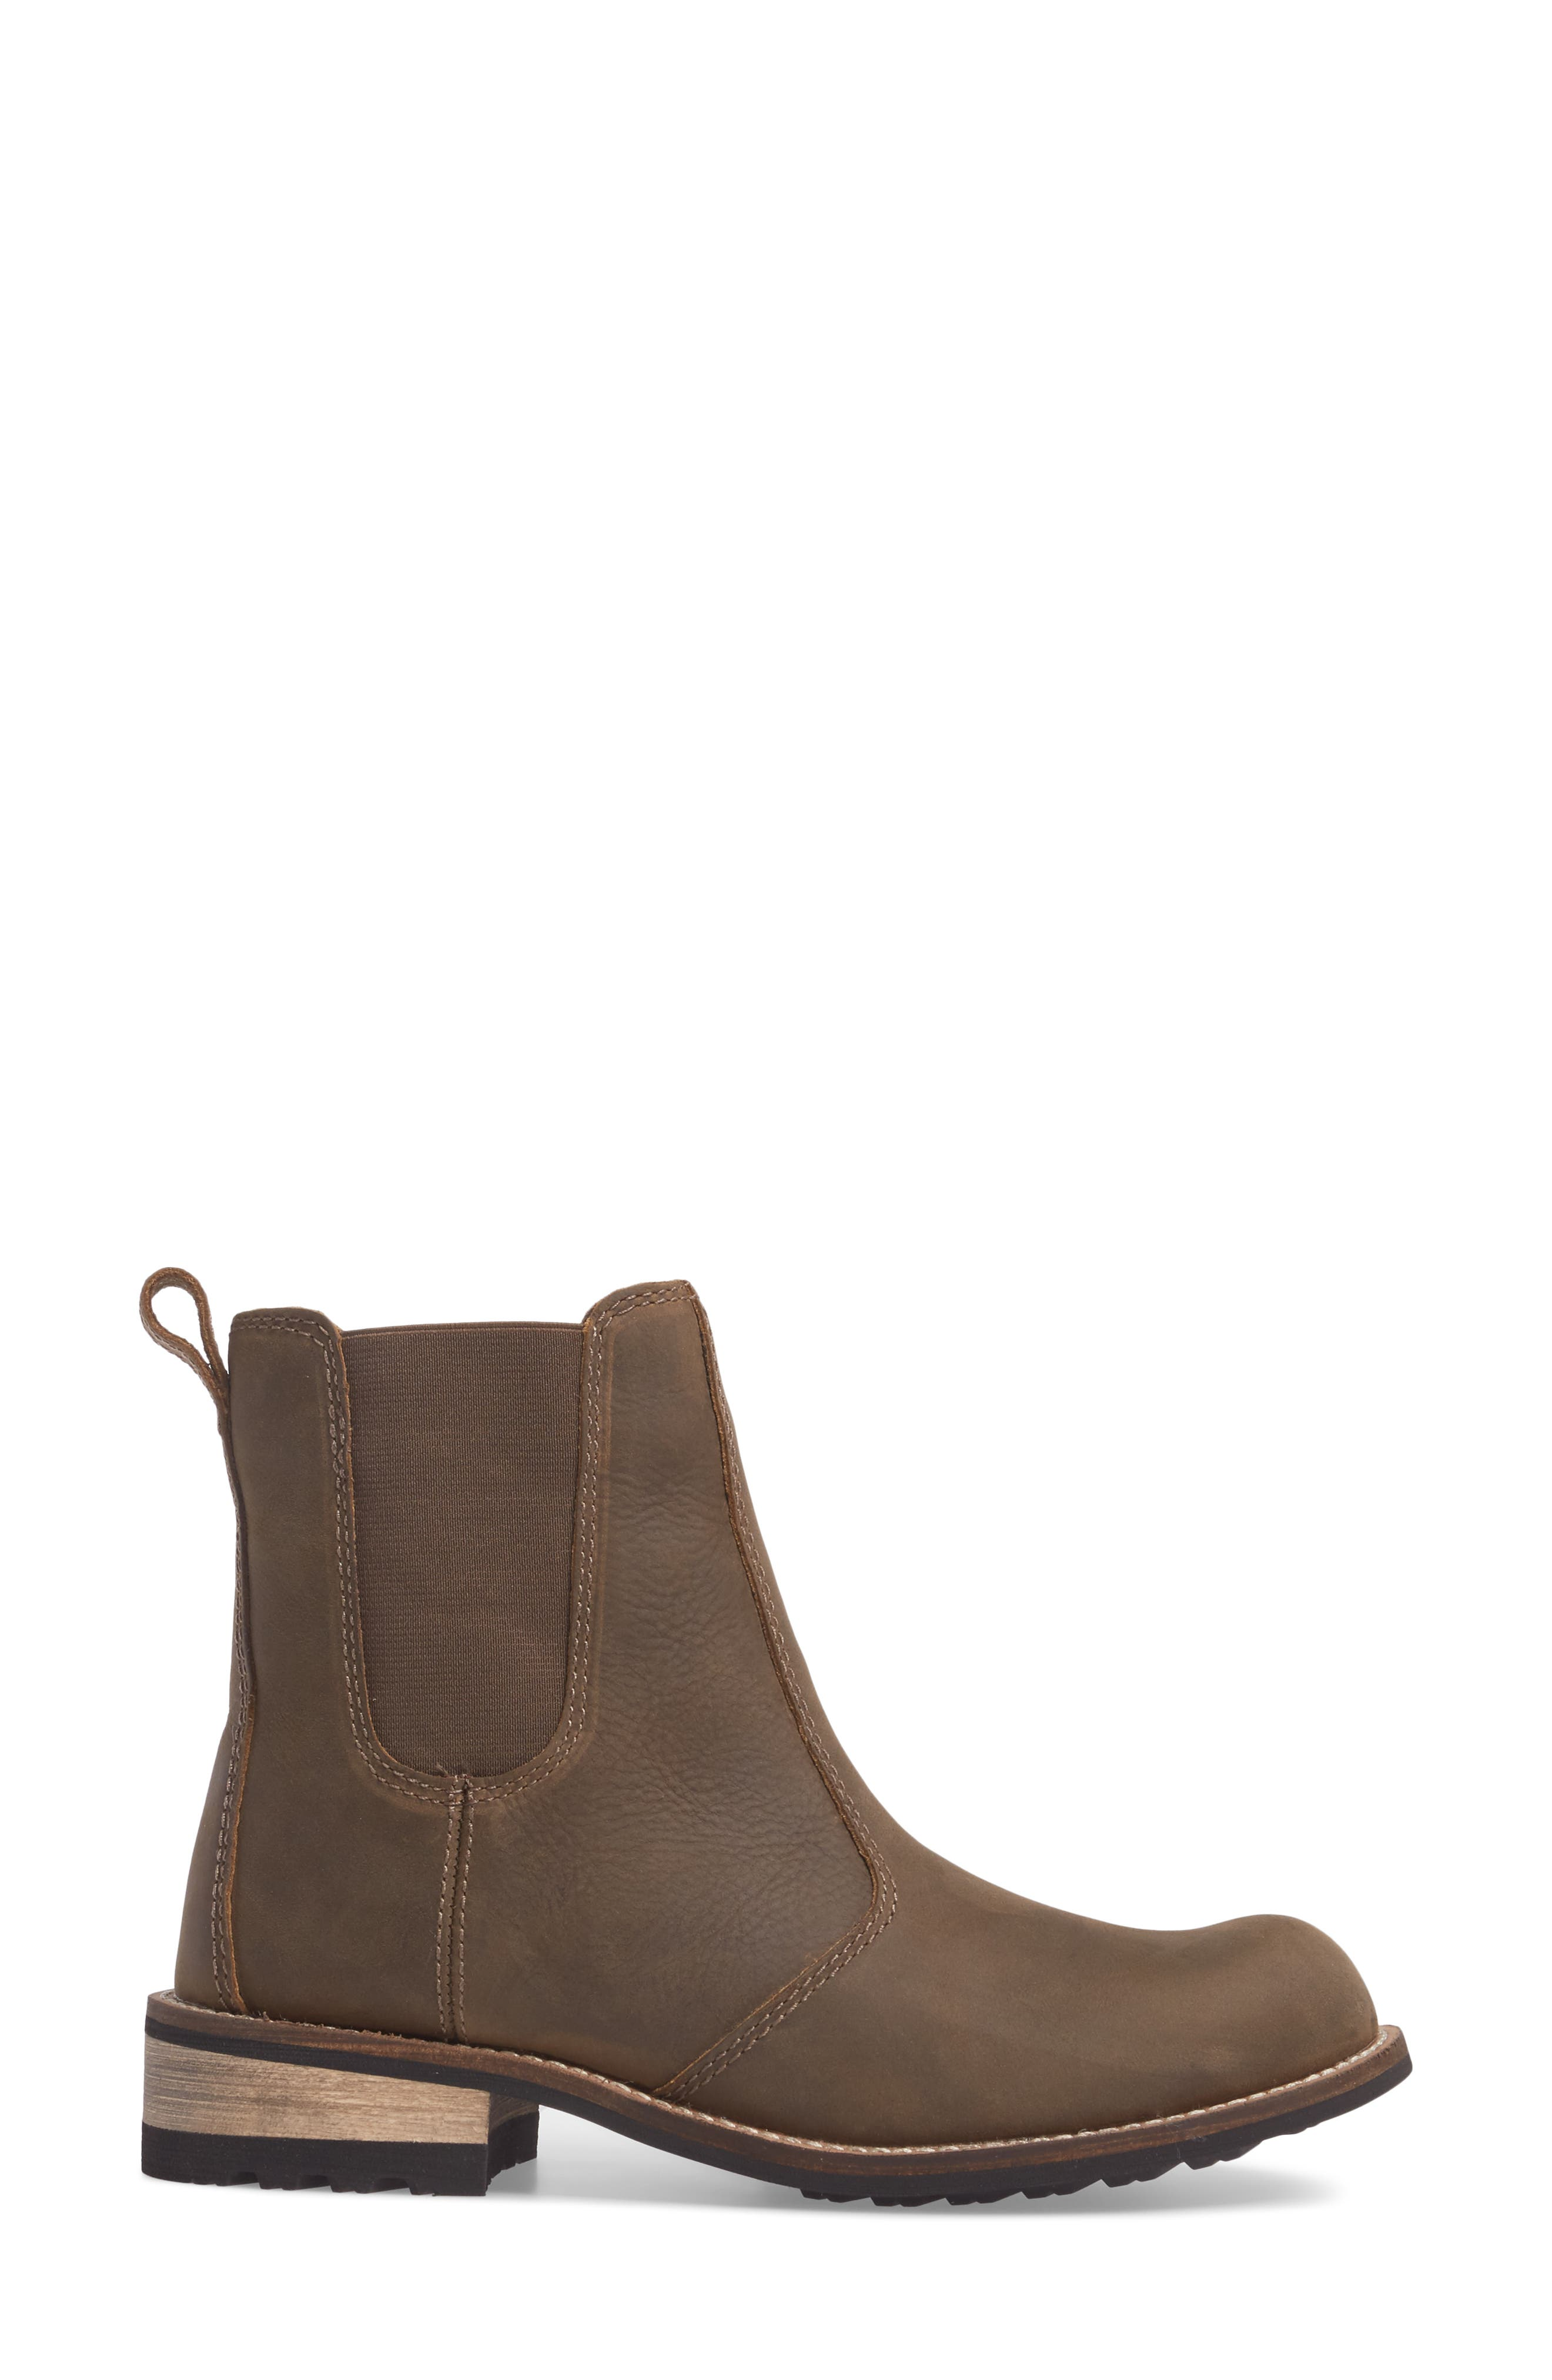 'Alma' Waterproof Chelsea Boot,                             Alternate thumbnail 3, color,                             Olive Leather